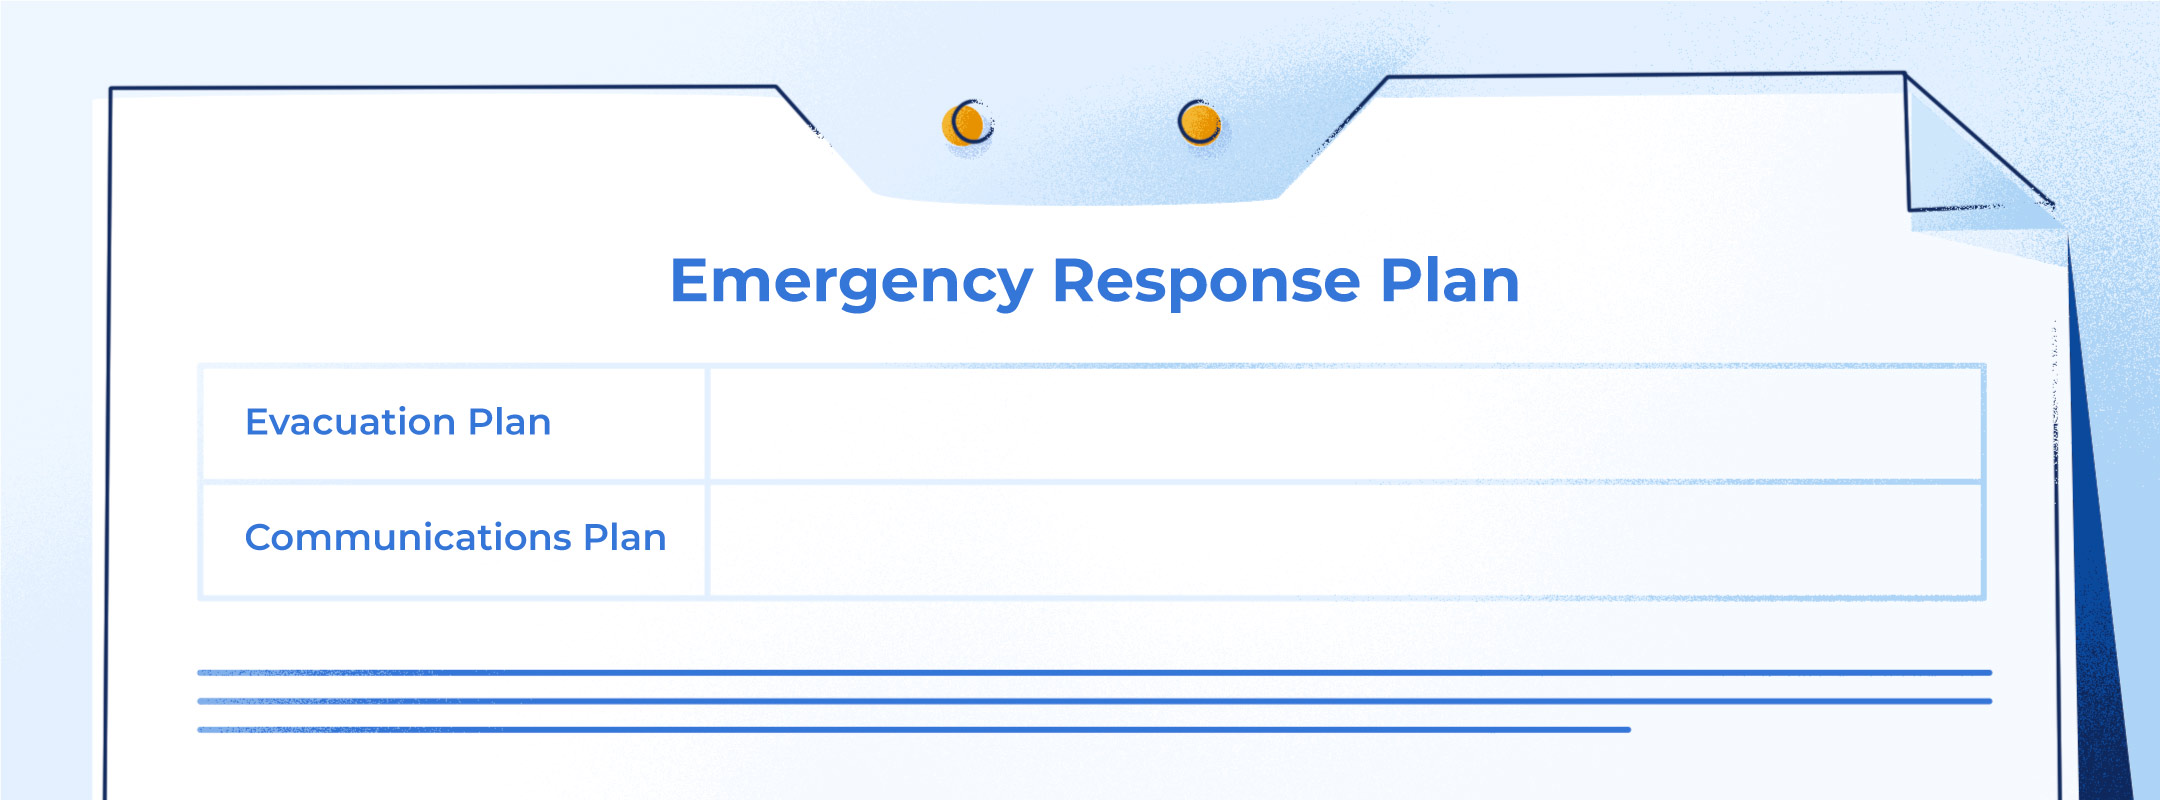 Illustrated basic example of an Emergency Response Plan